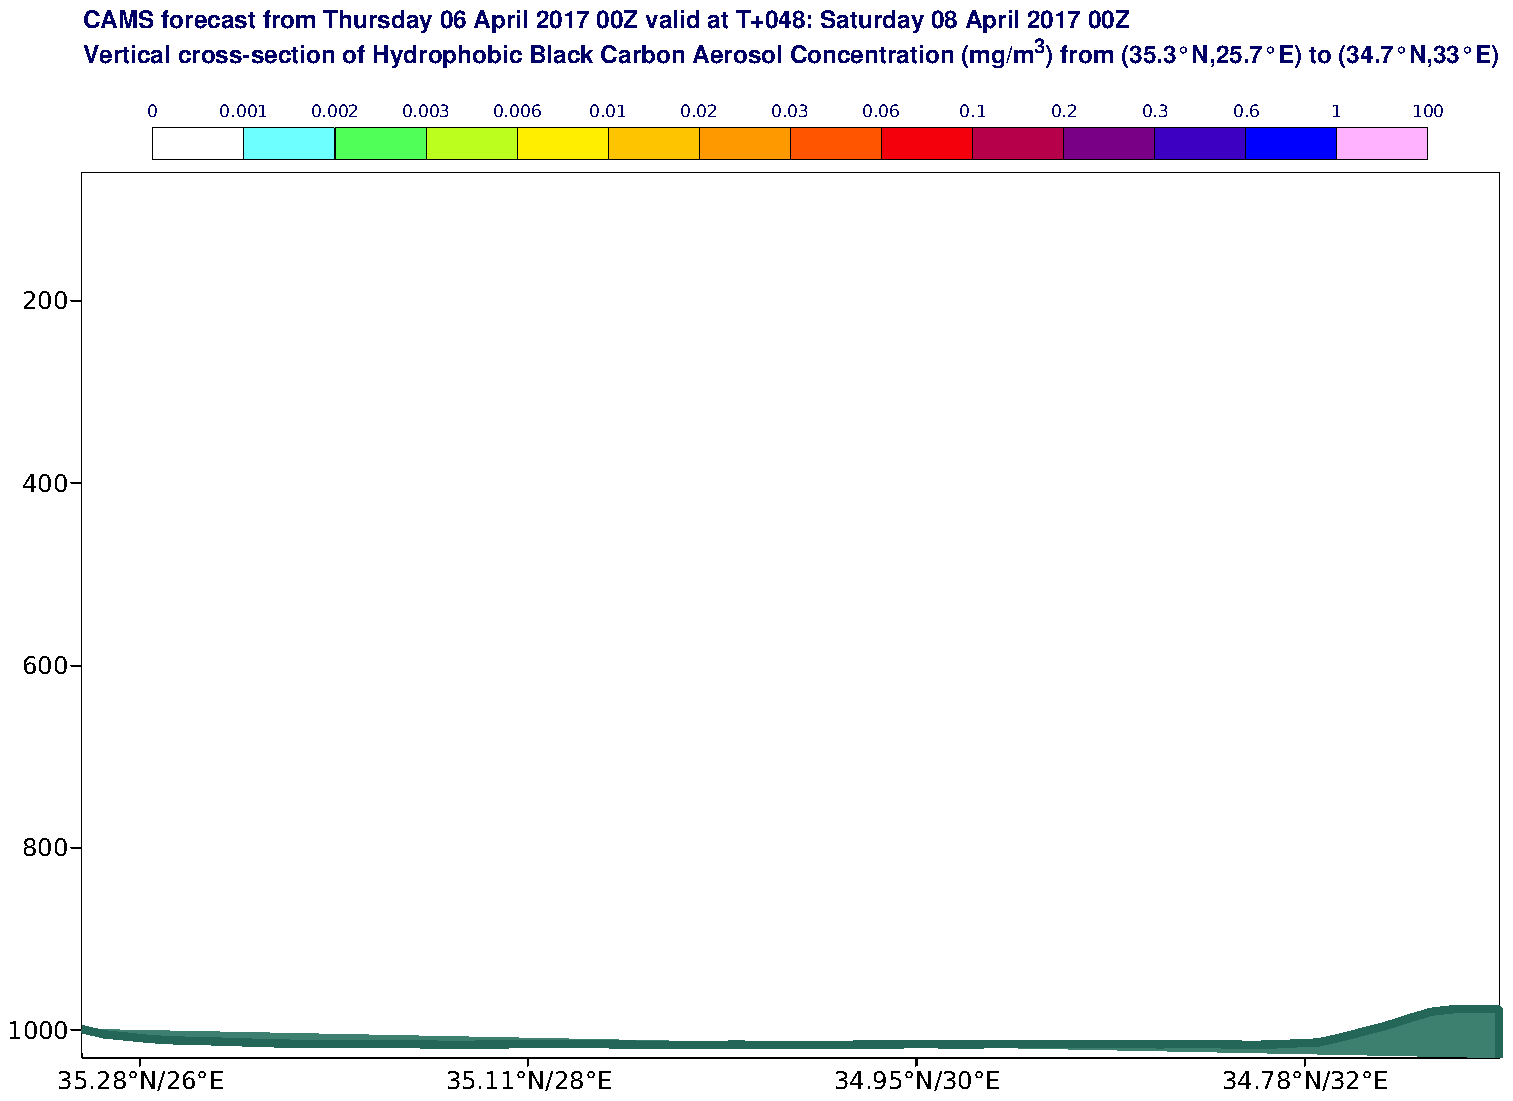 Vertical cross-section of Hydrophobic Black Carbon Aerosol Concentration (mg/m3) valid at T48 - 2017-04-08 00:00